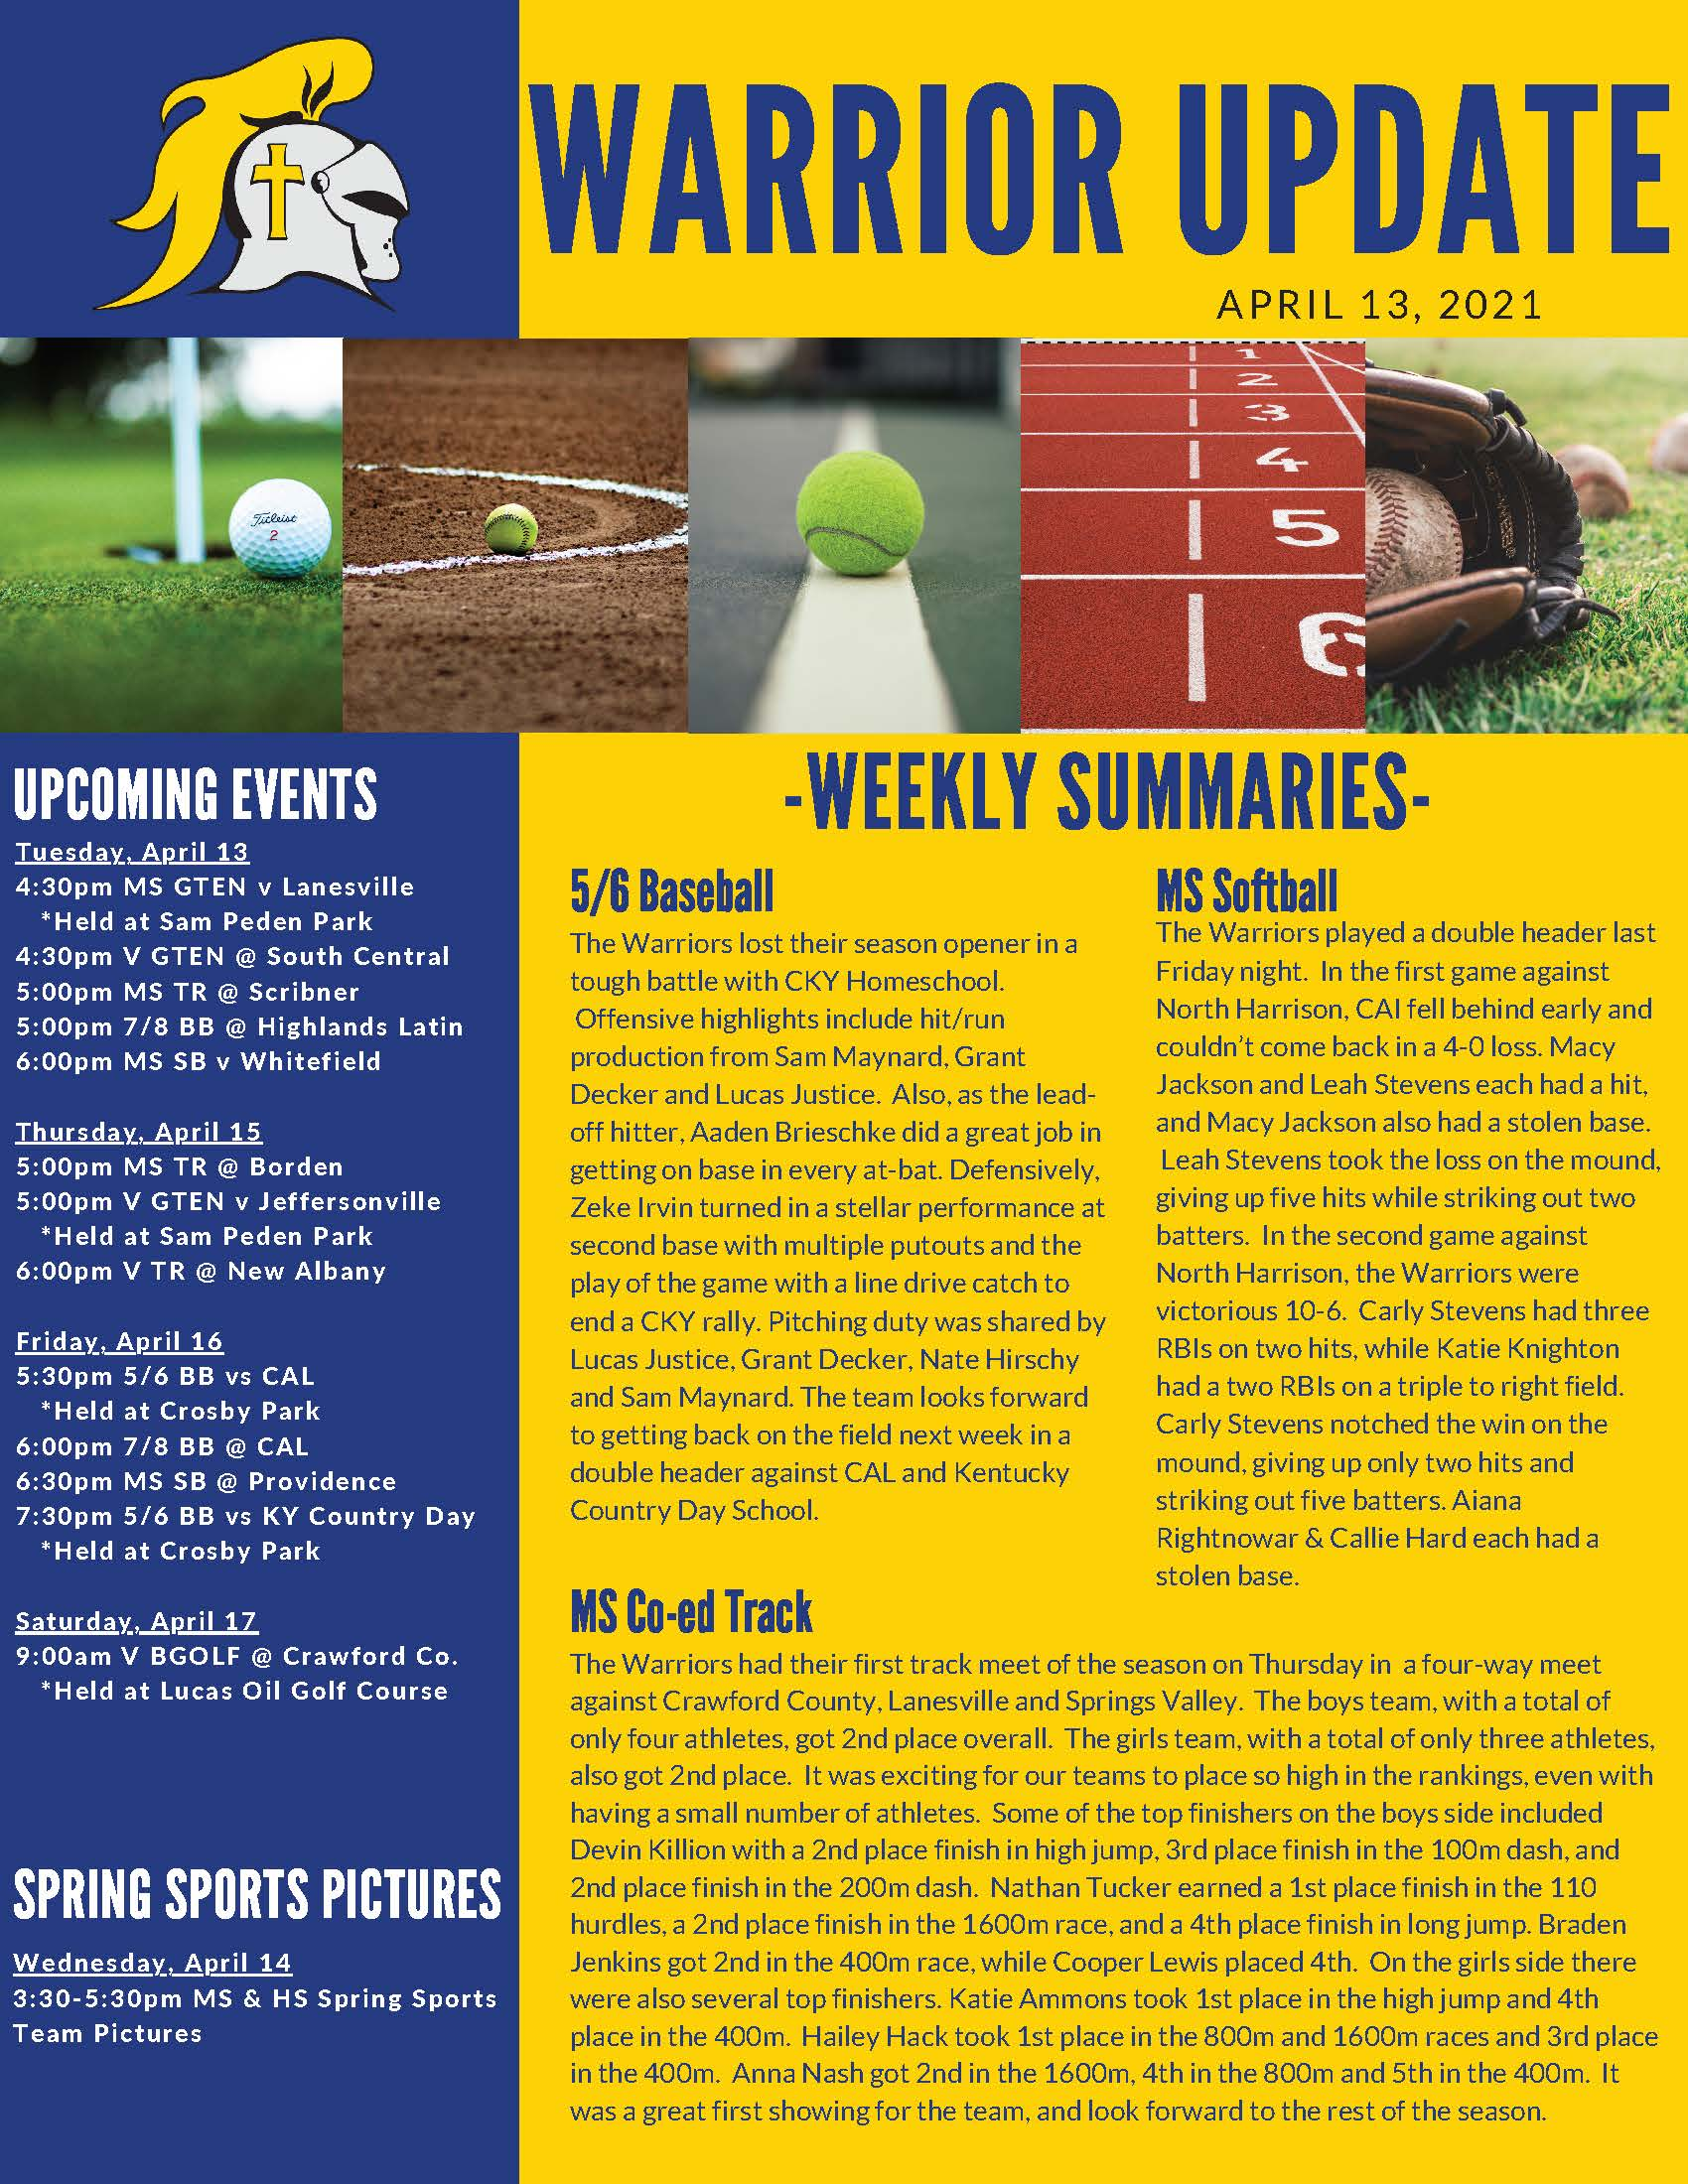 Christian Academy School System | Christian Academy of Indiana | Athletics | Warrior Update | April 13, 2021